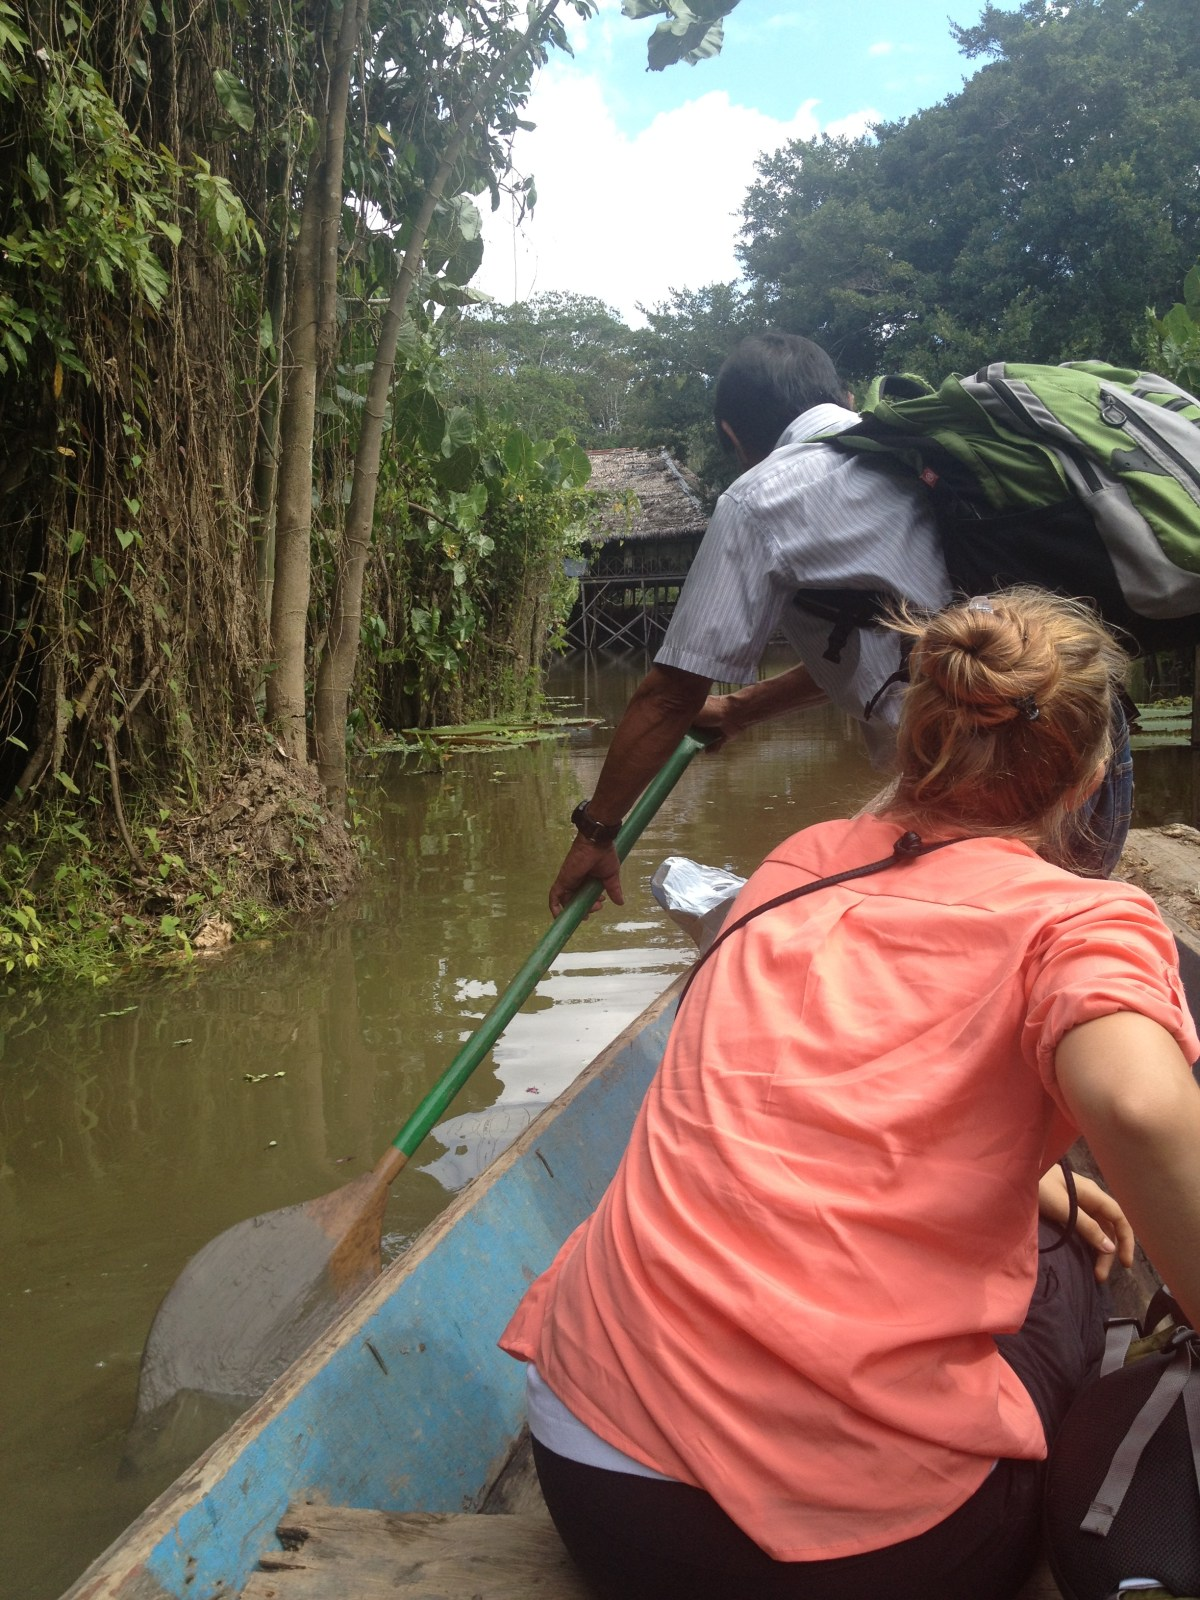 Amazon Tourism: How deep is the water?